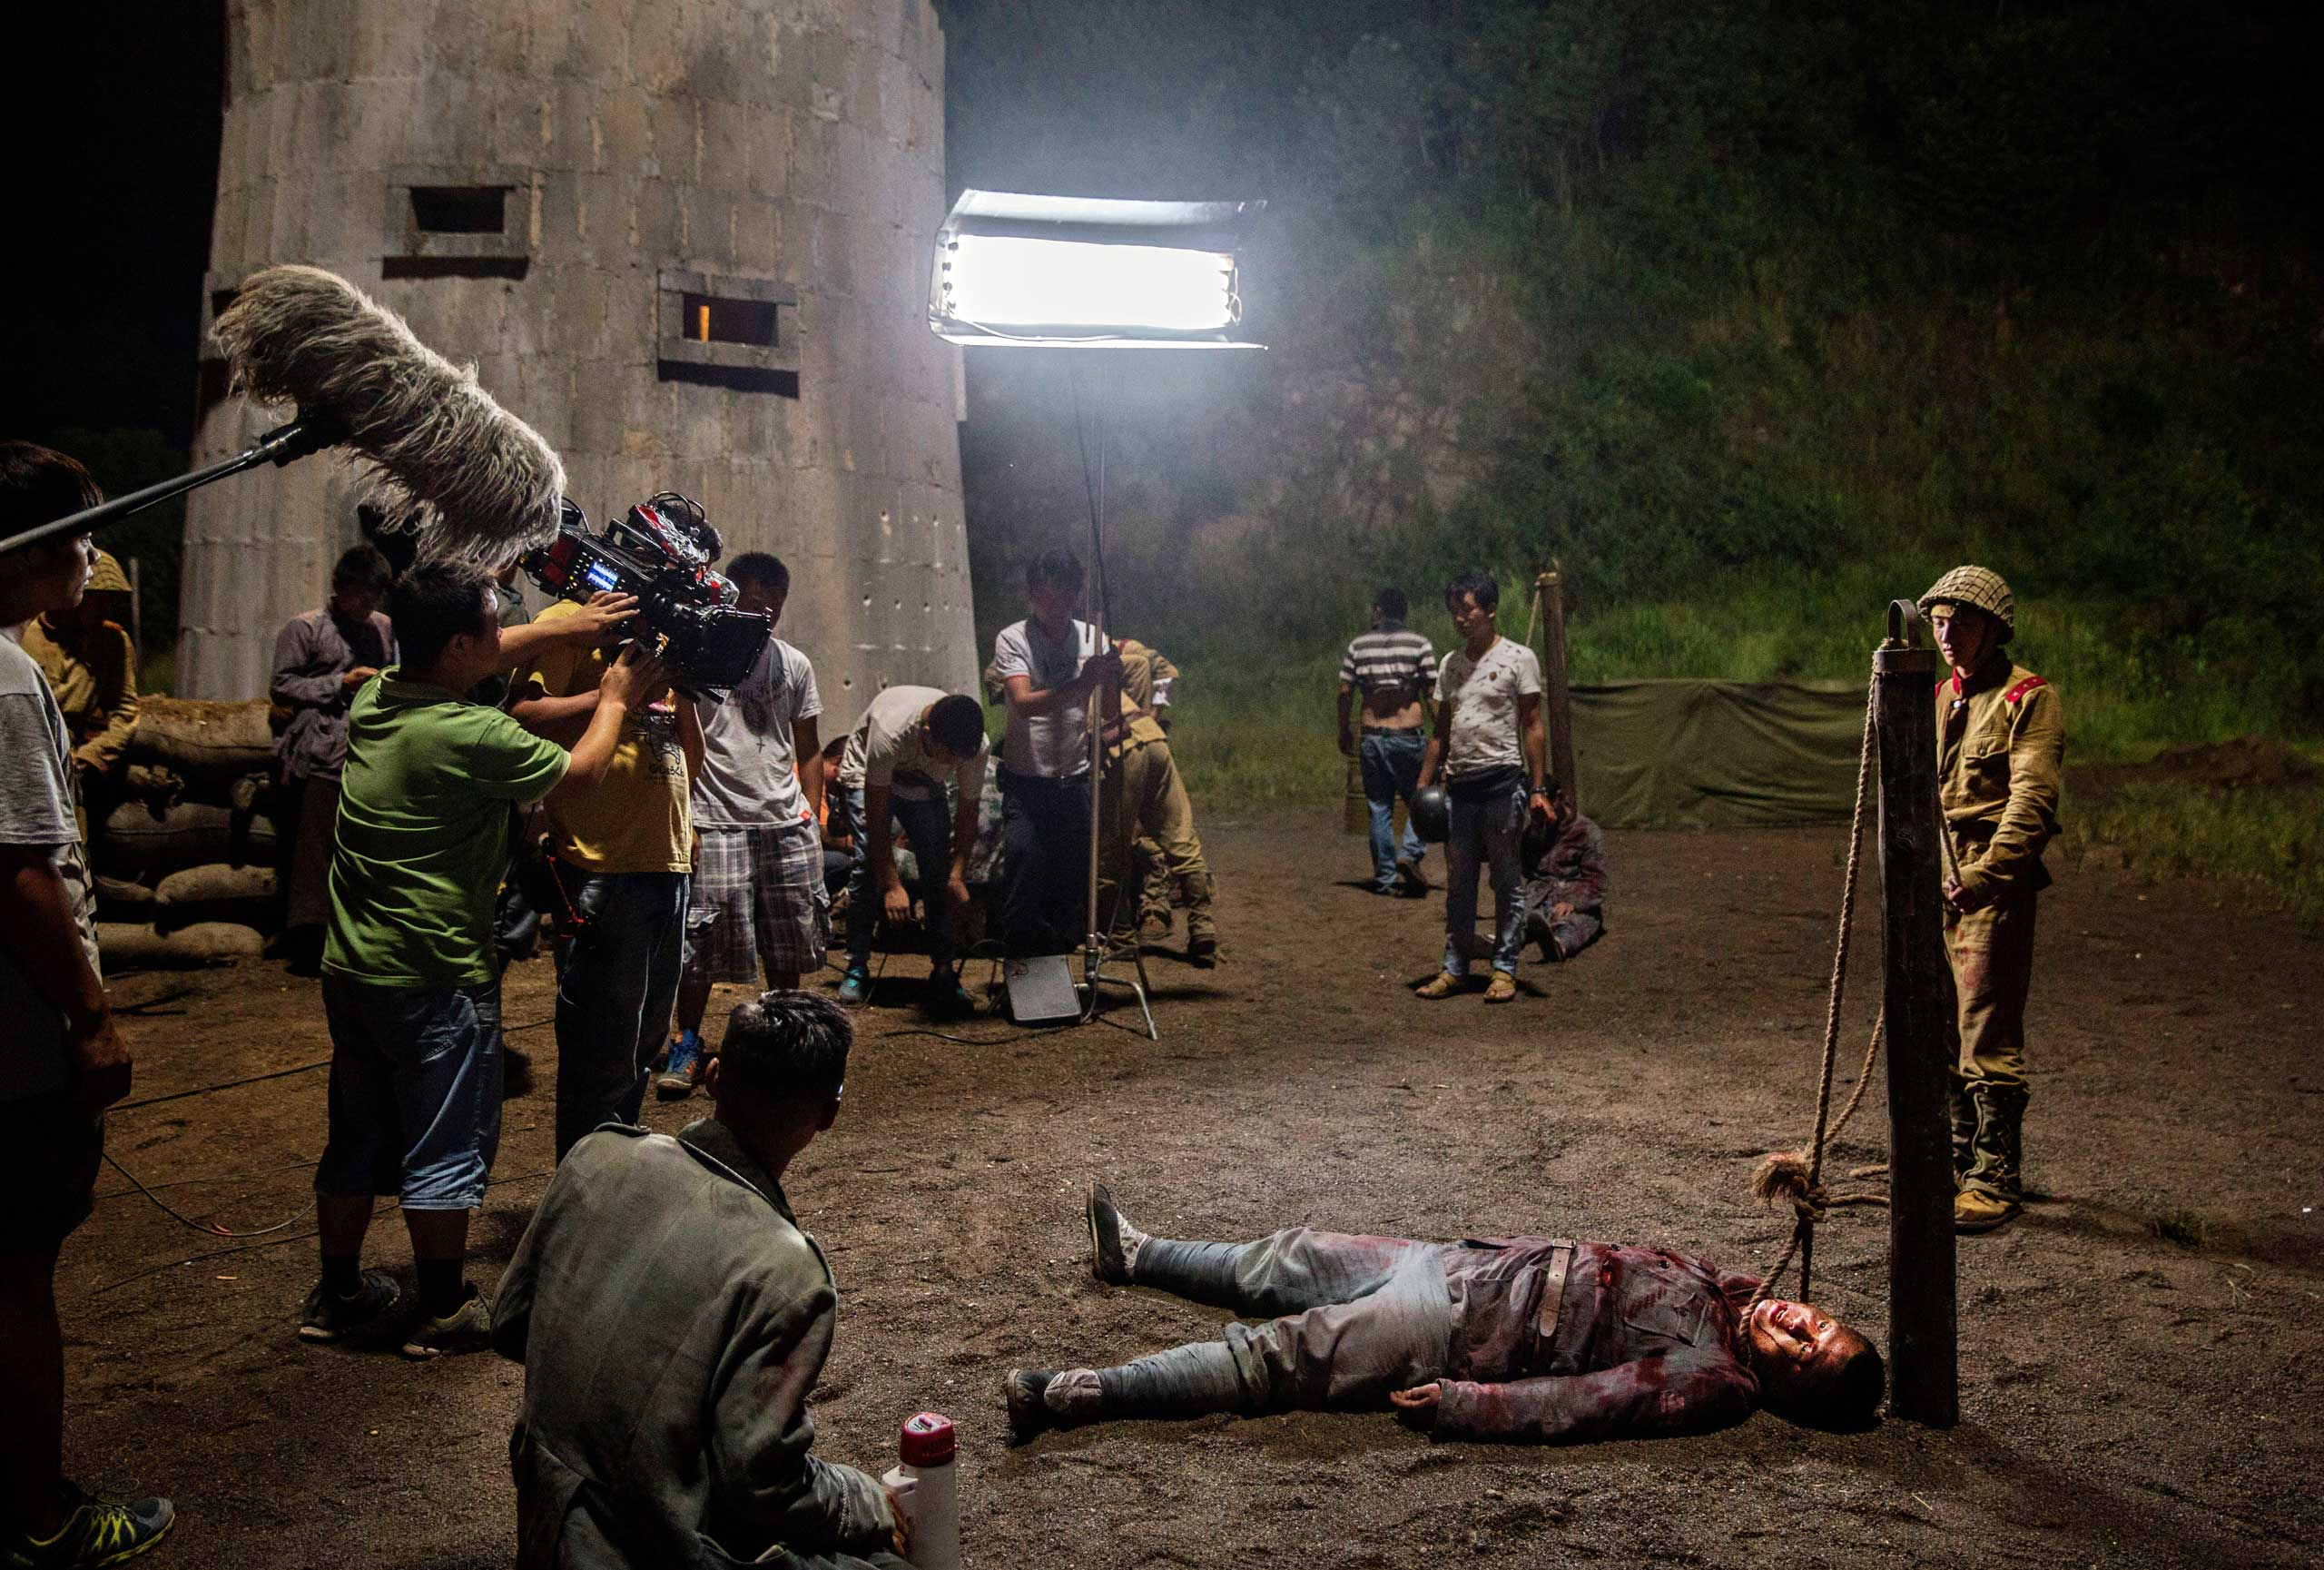 An actor playing a Nationalist soldier prisoner held by Japanese soldiers lays on the ground with a rope around his neck during filming of a series set during the second Sino-Japanese War, in Hengdian,  on Aug. 11, 2015